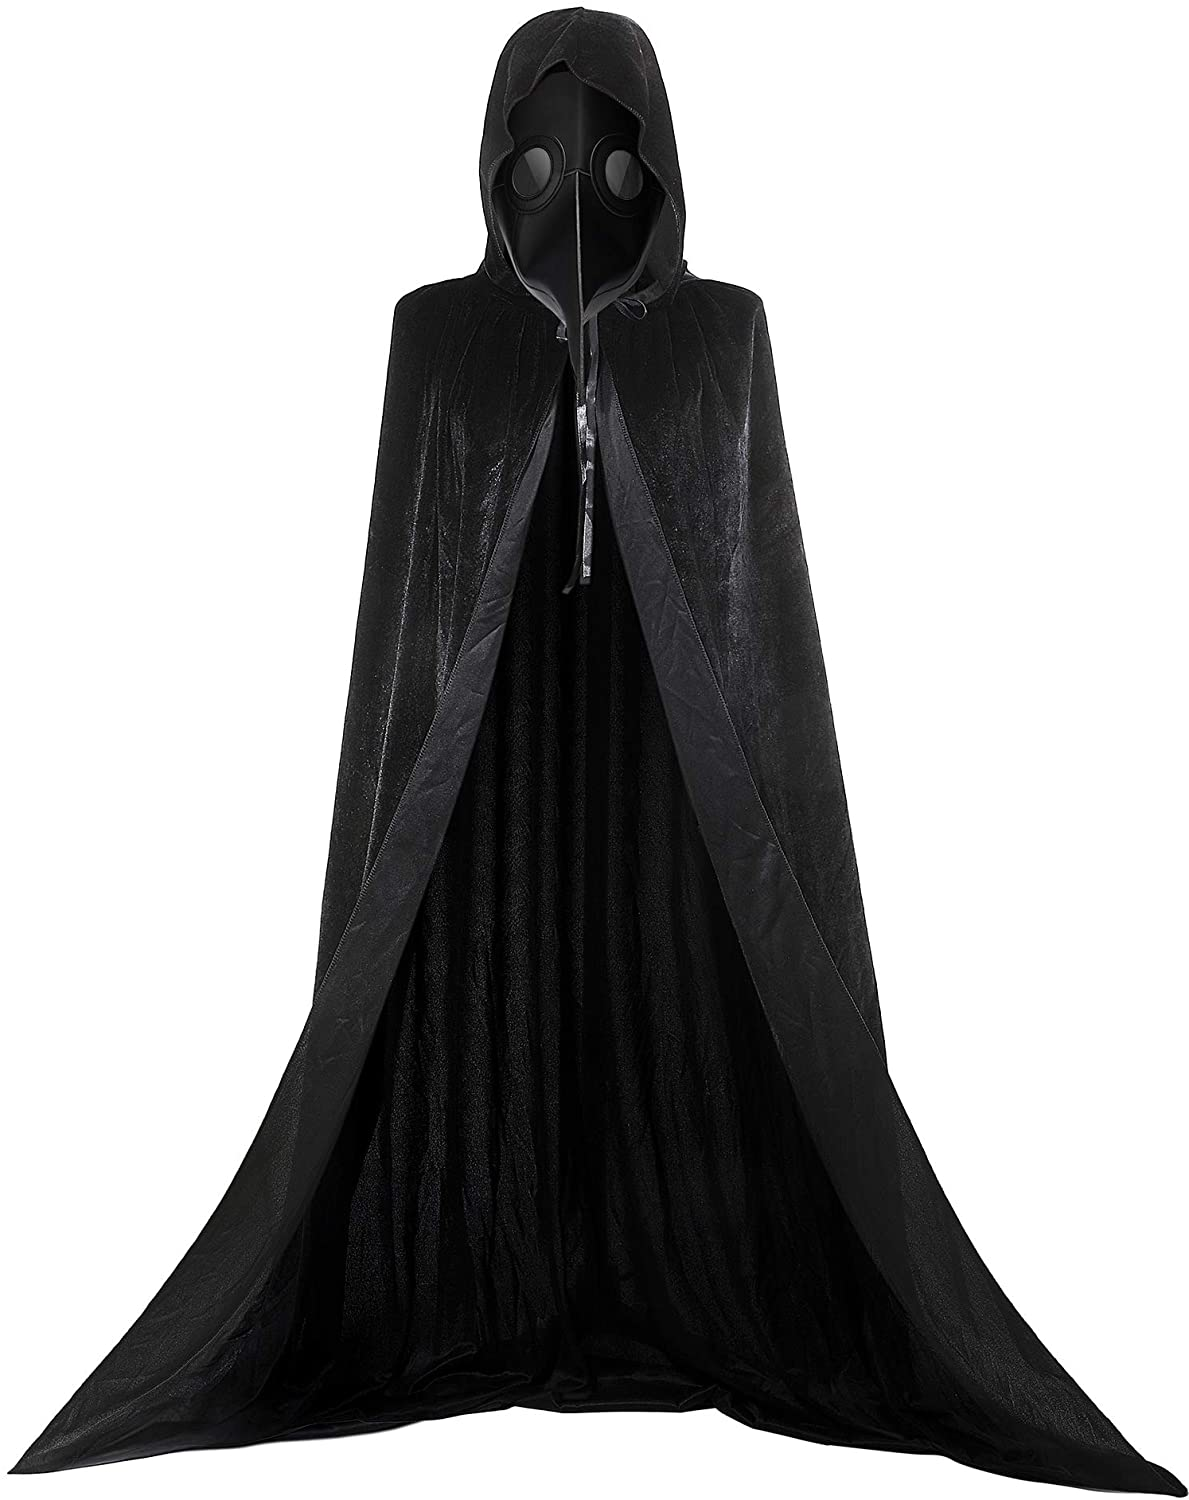 Bird Mask with Cloak Kit Long Velvet Hooded Cape and Long Nose Beak Cosplay Steampunk Halloween Costume Props Black